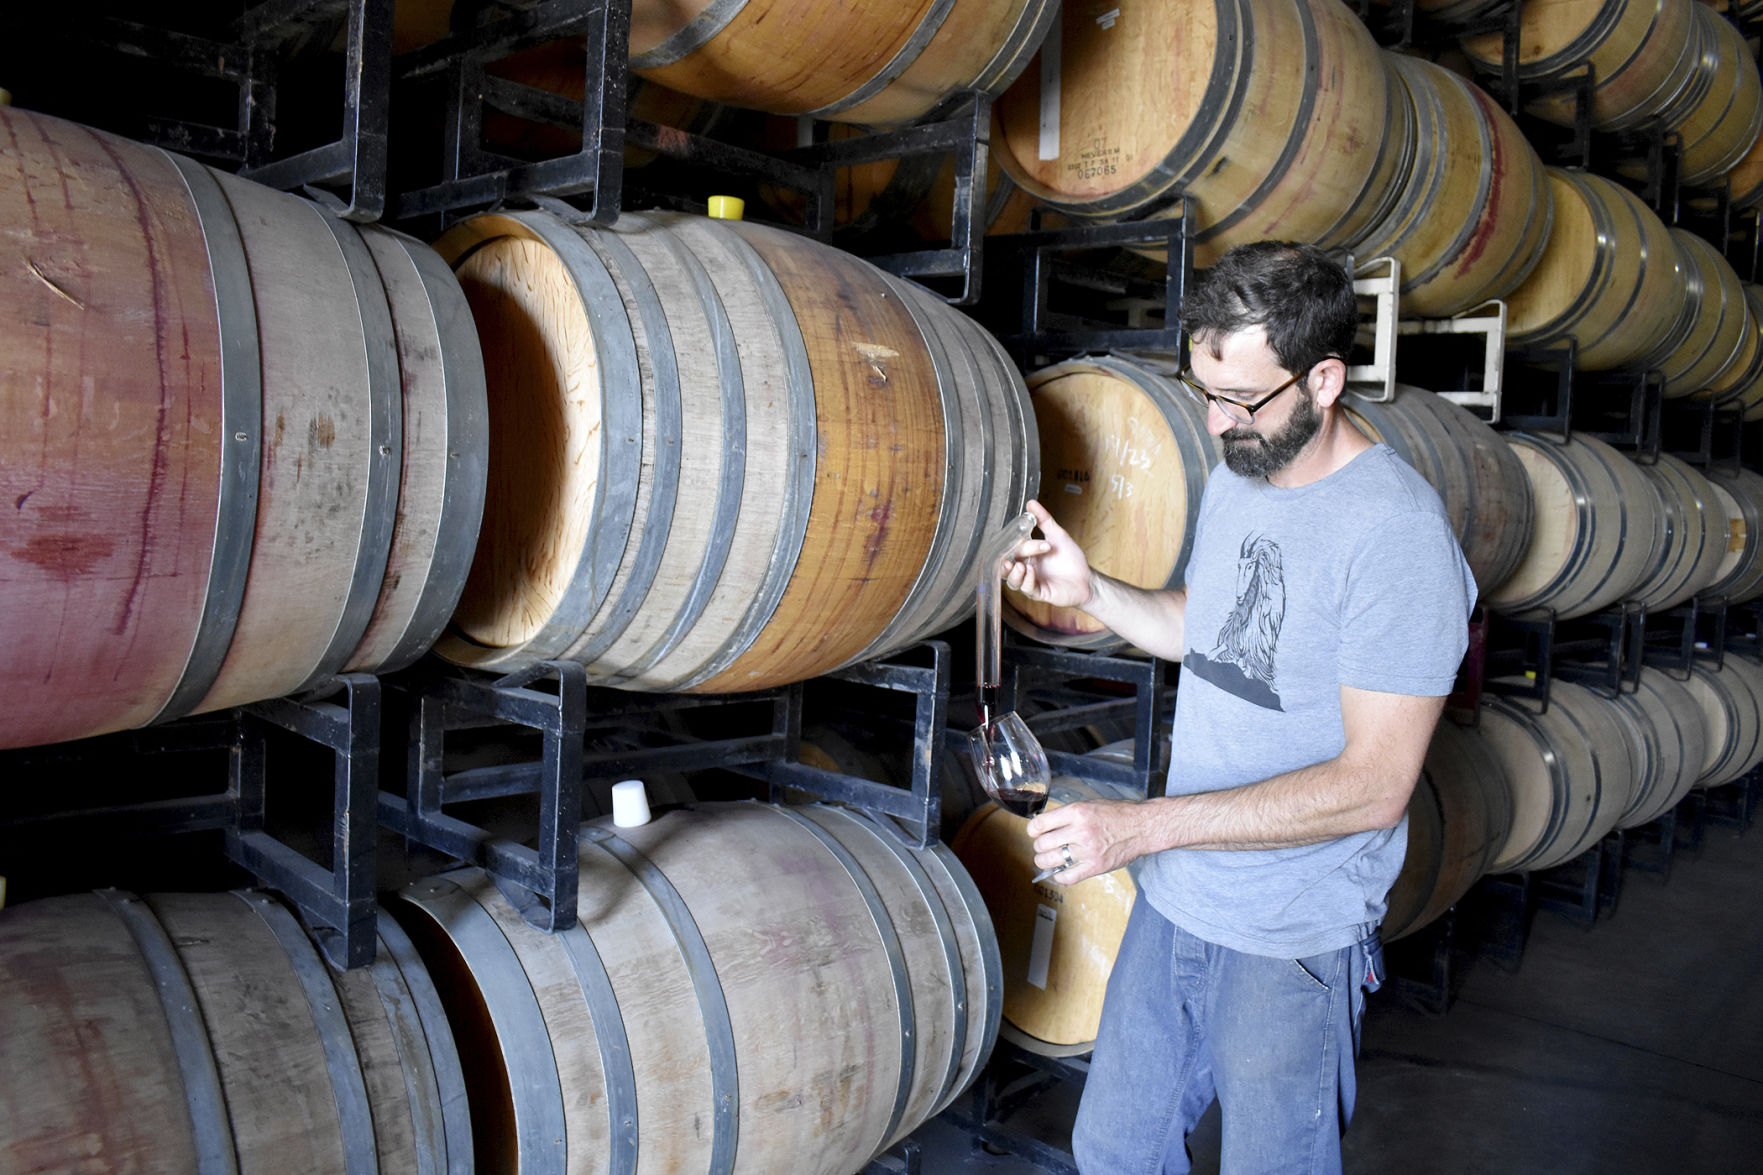 Family Owned Winery Places Focus On Building Community